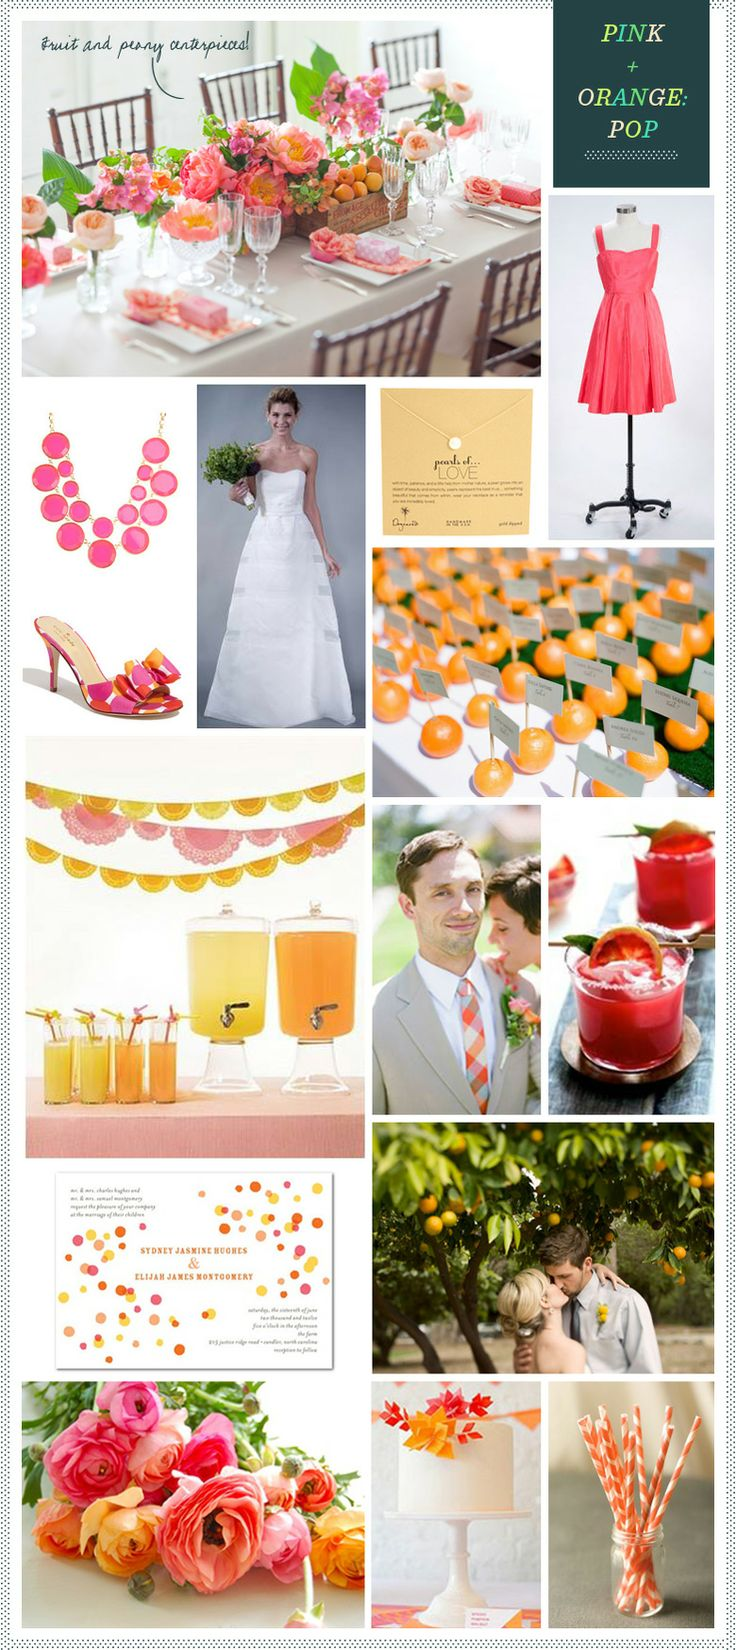 Pink and orange inspiration.